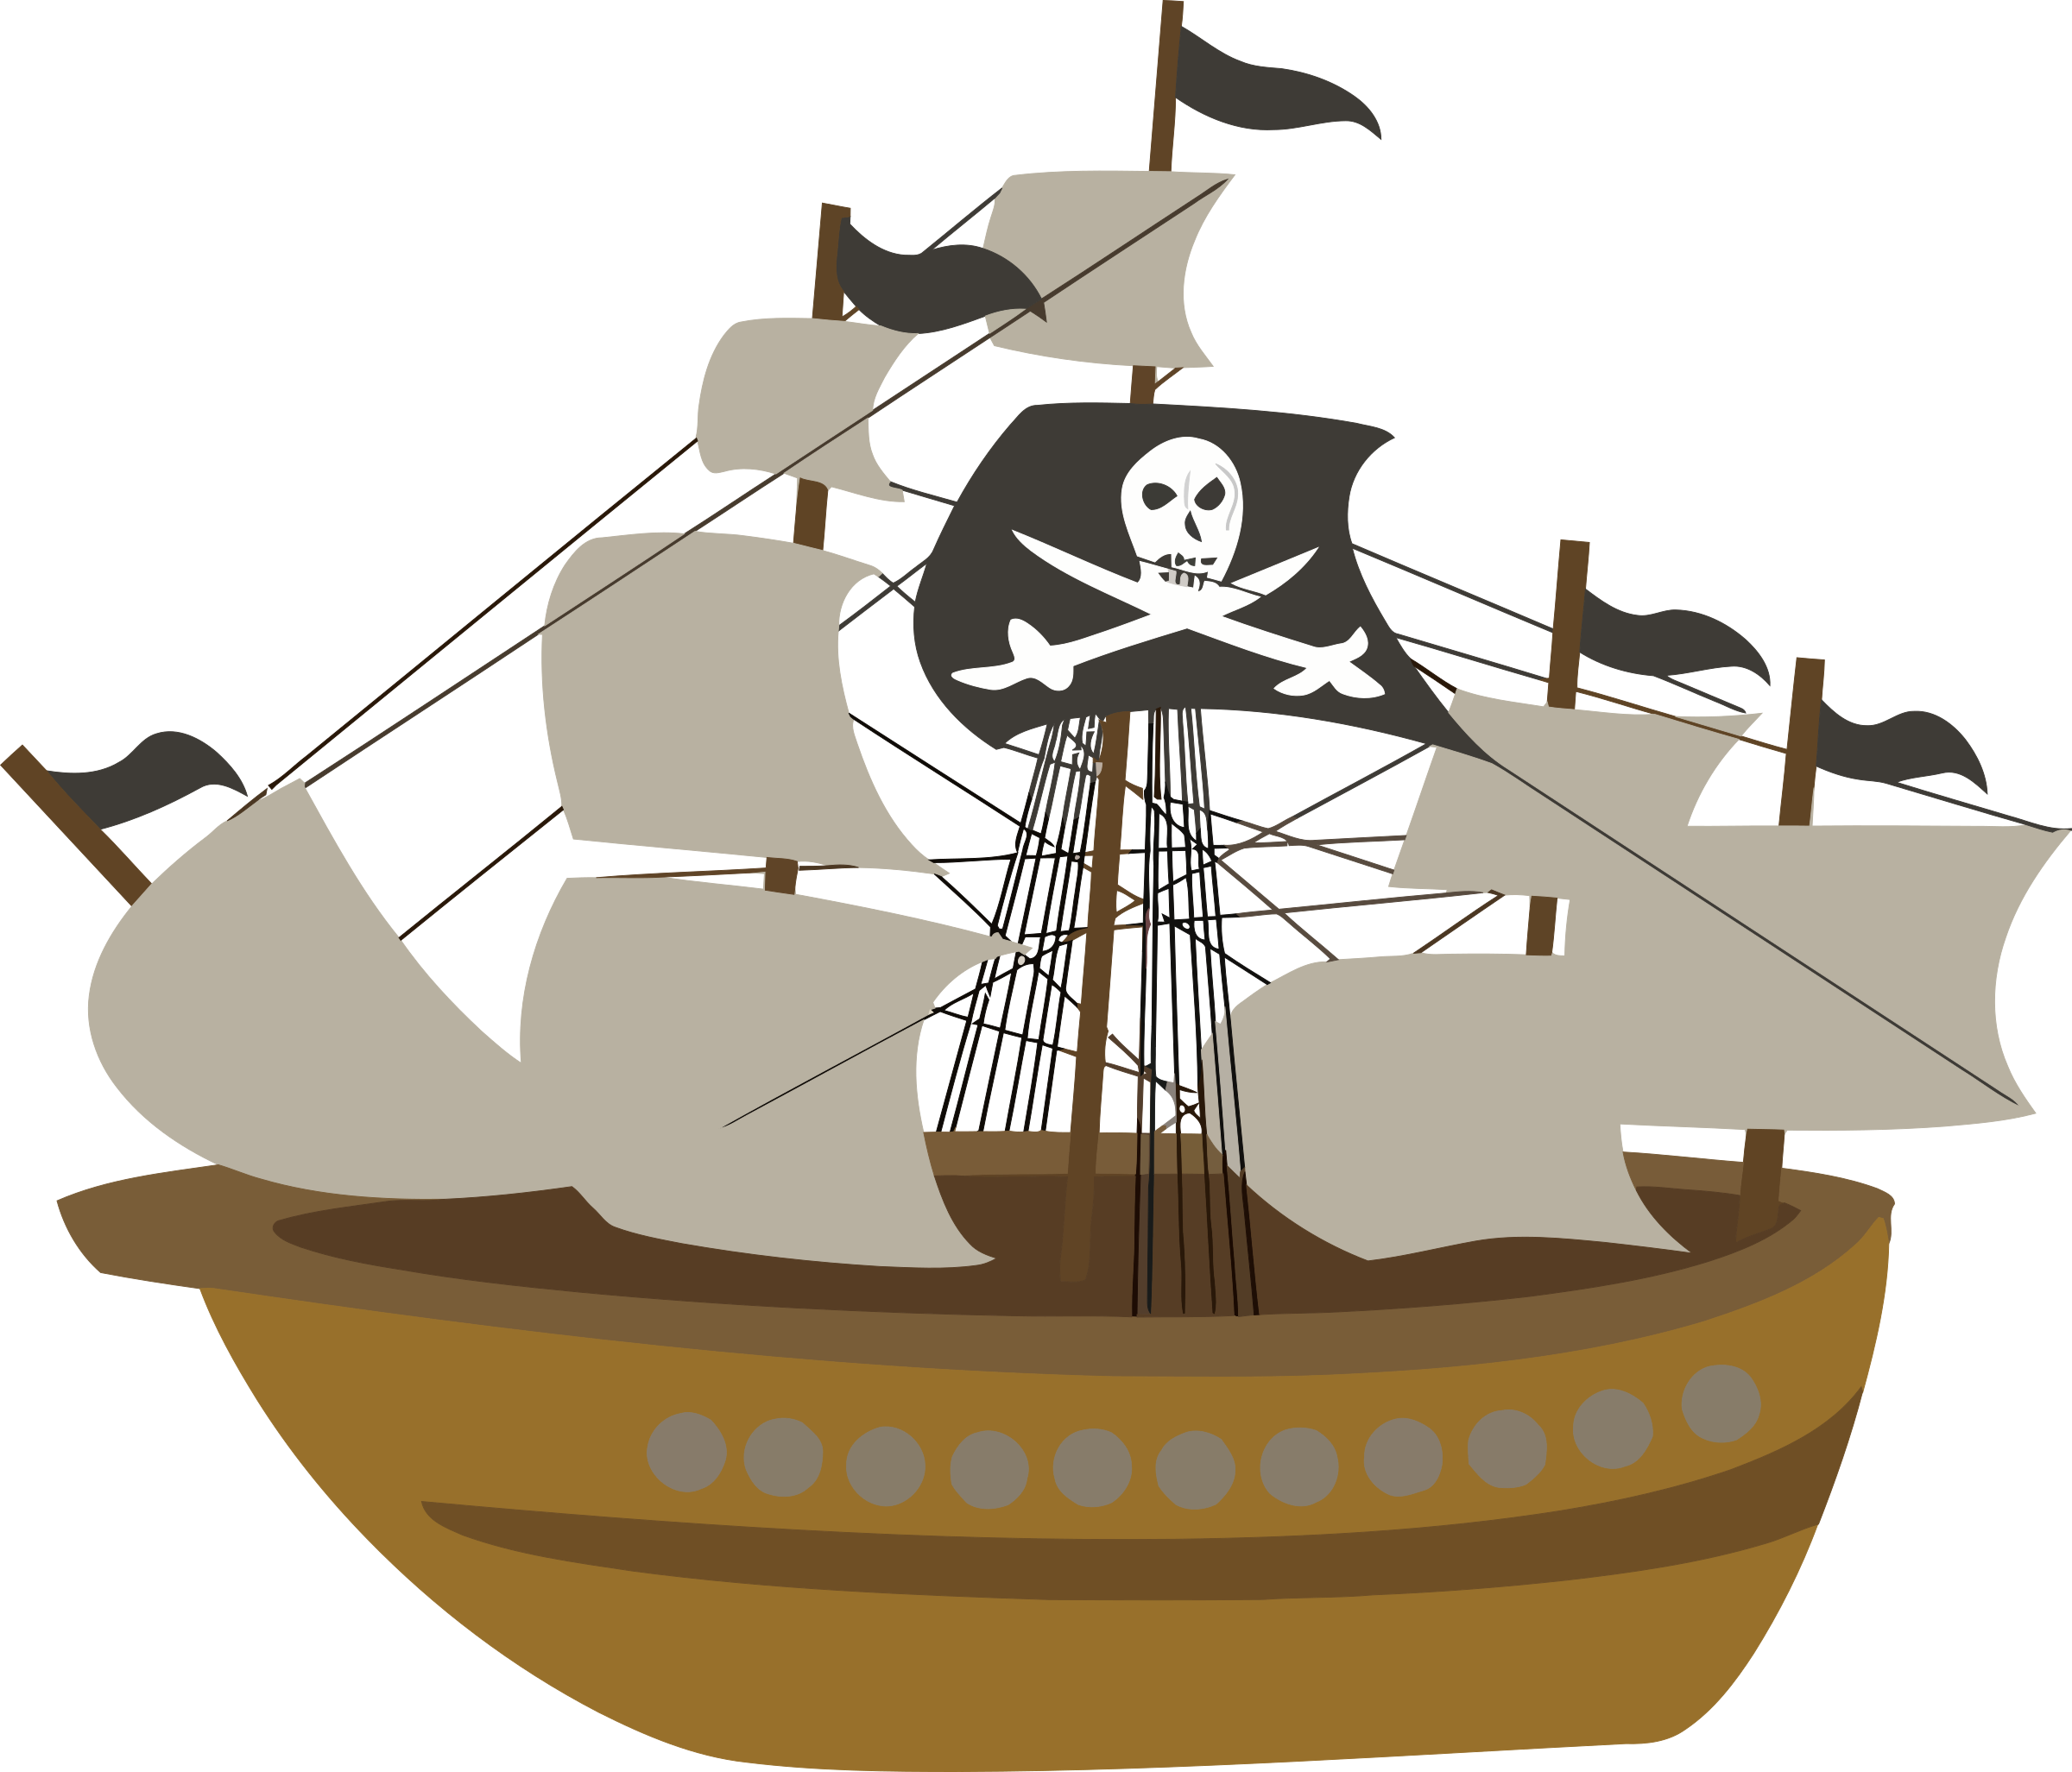 pirate ship clipart free at getdrawings com free for personal use rh getdrawings com